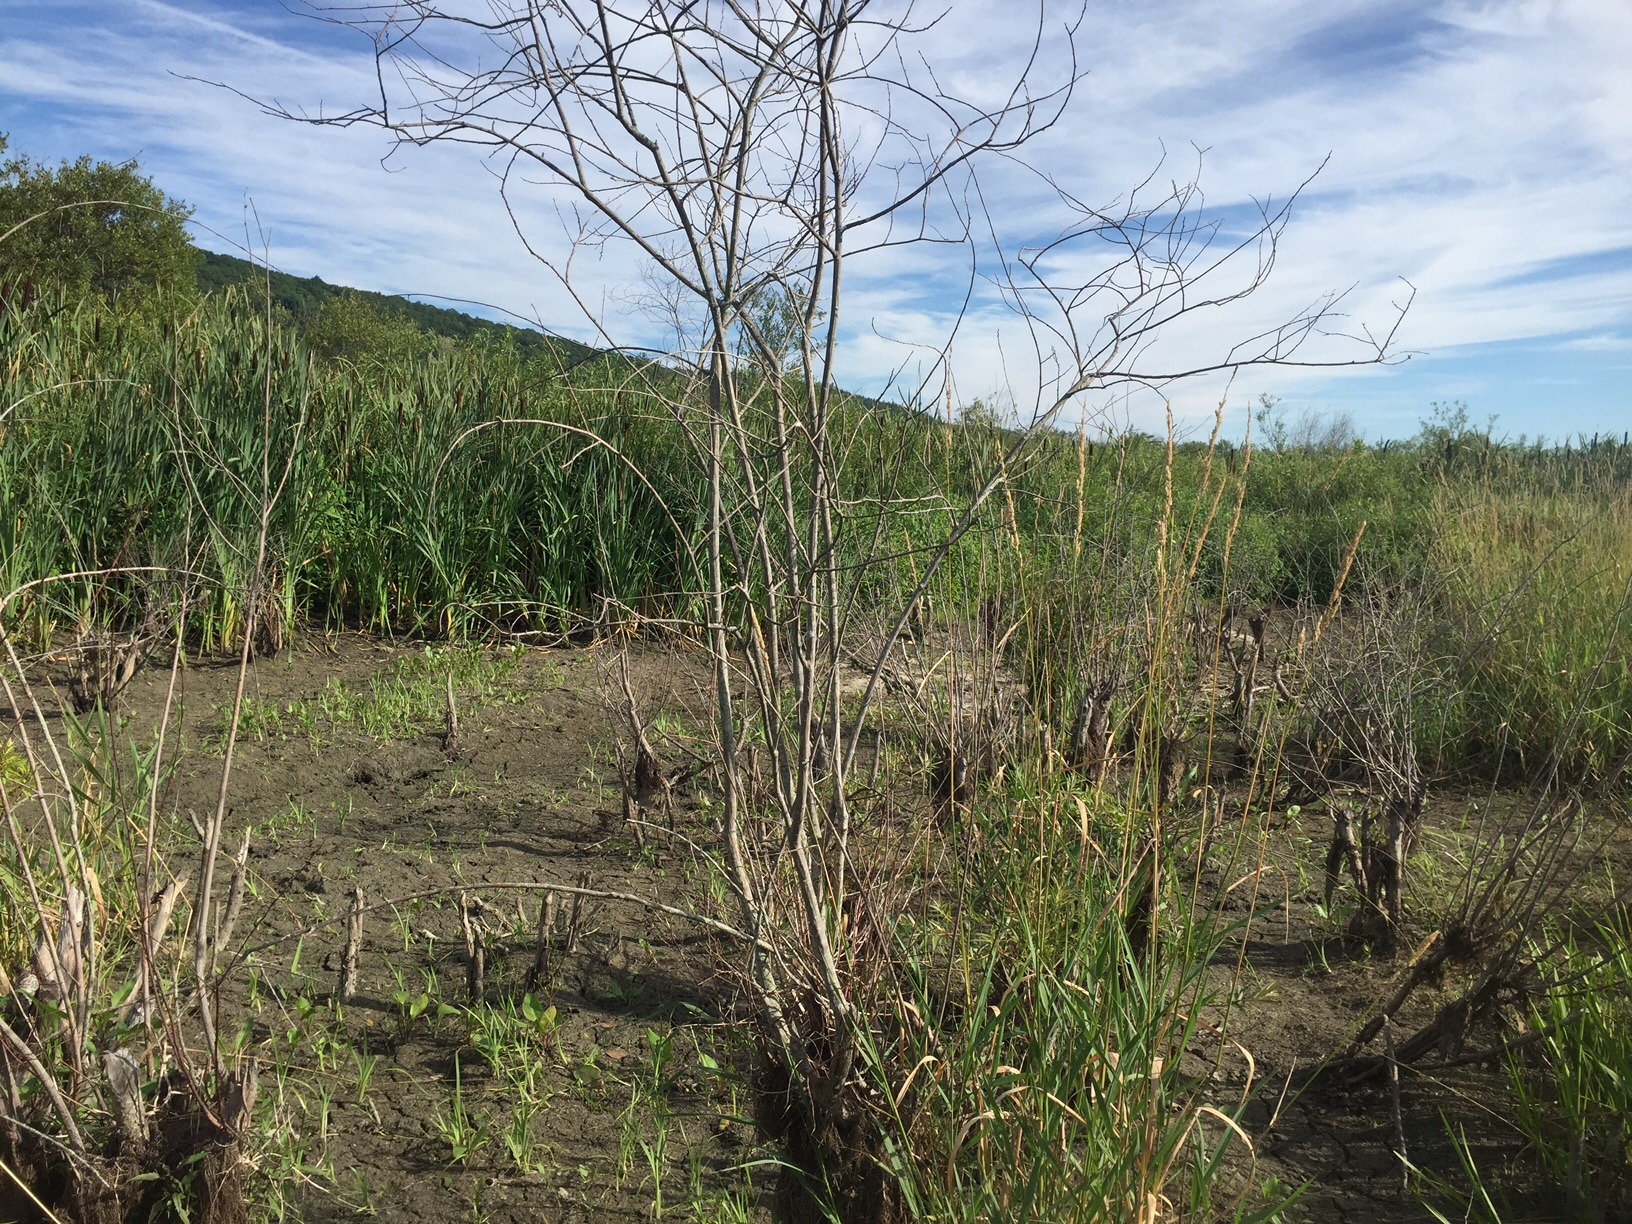 Swampy area currently dry from the summer heat.Photograph by Timothy J. Walsh